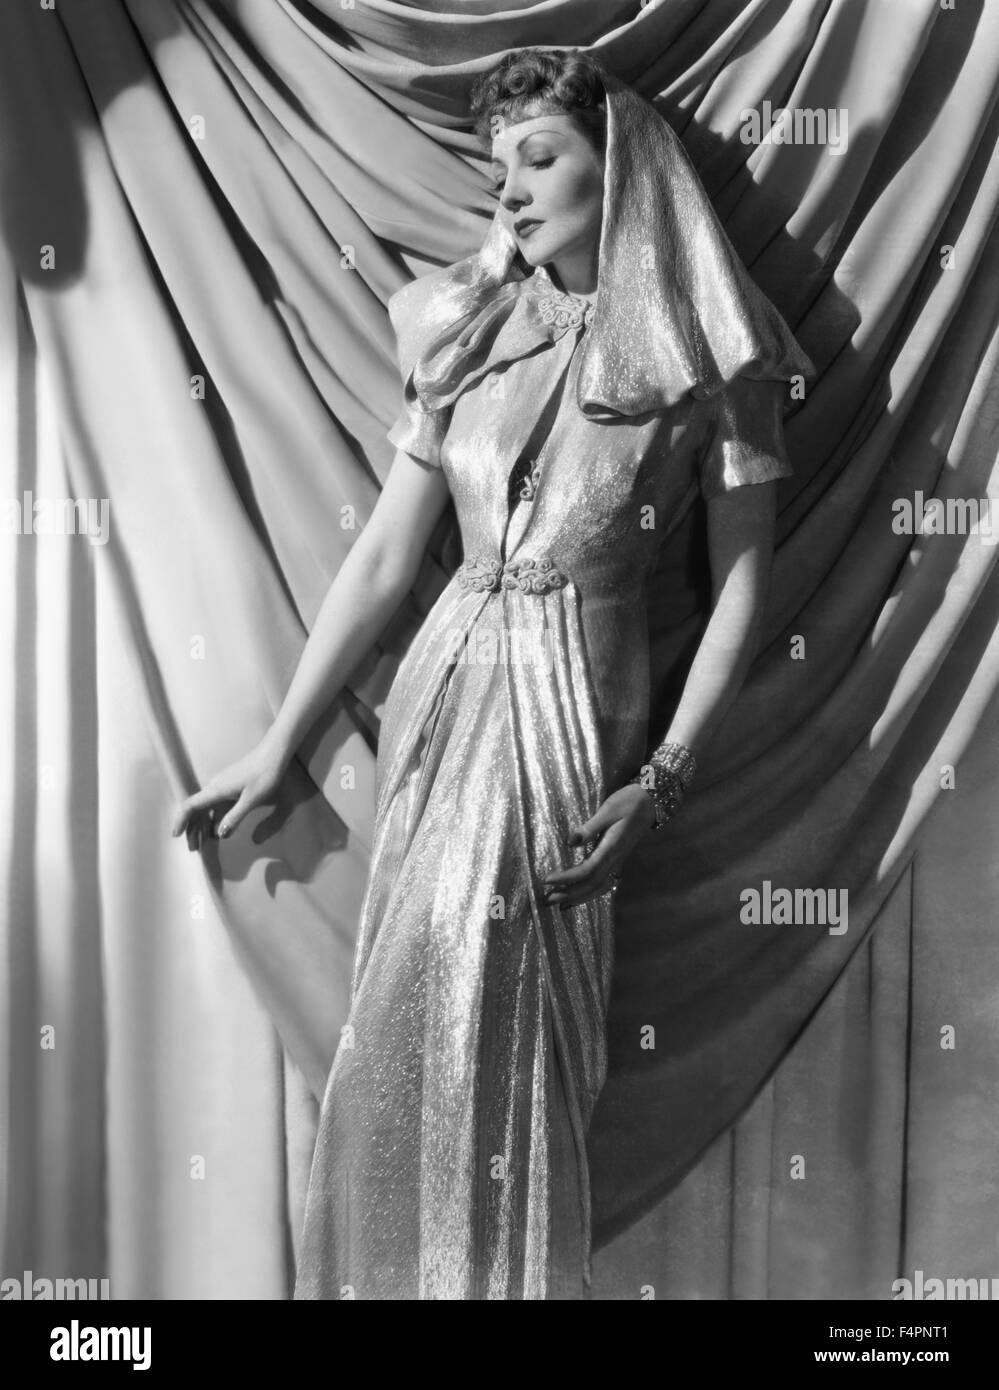 Claudette Colbert in the 30's [Paramount Pictures] - Stock Image